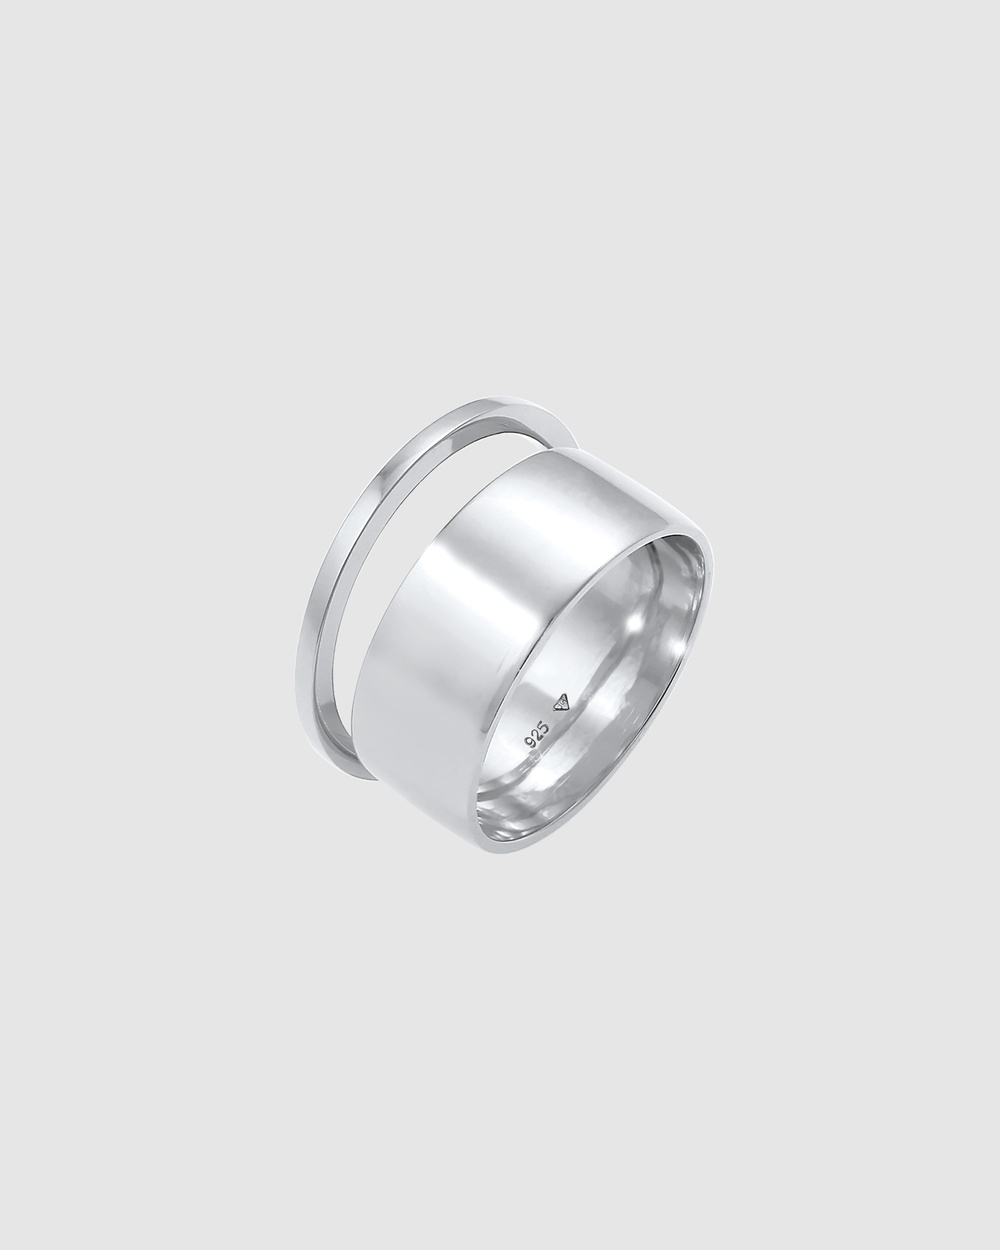 Elli Jewelry Ring Bandring Stacking Wide Narrow Set of 2 in 925 Sterling Silver Jewellery Silver